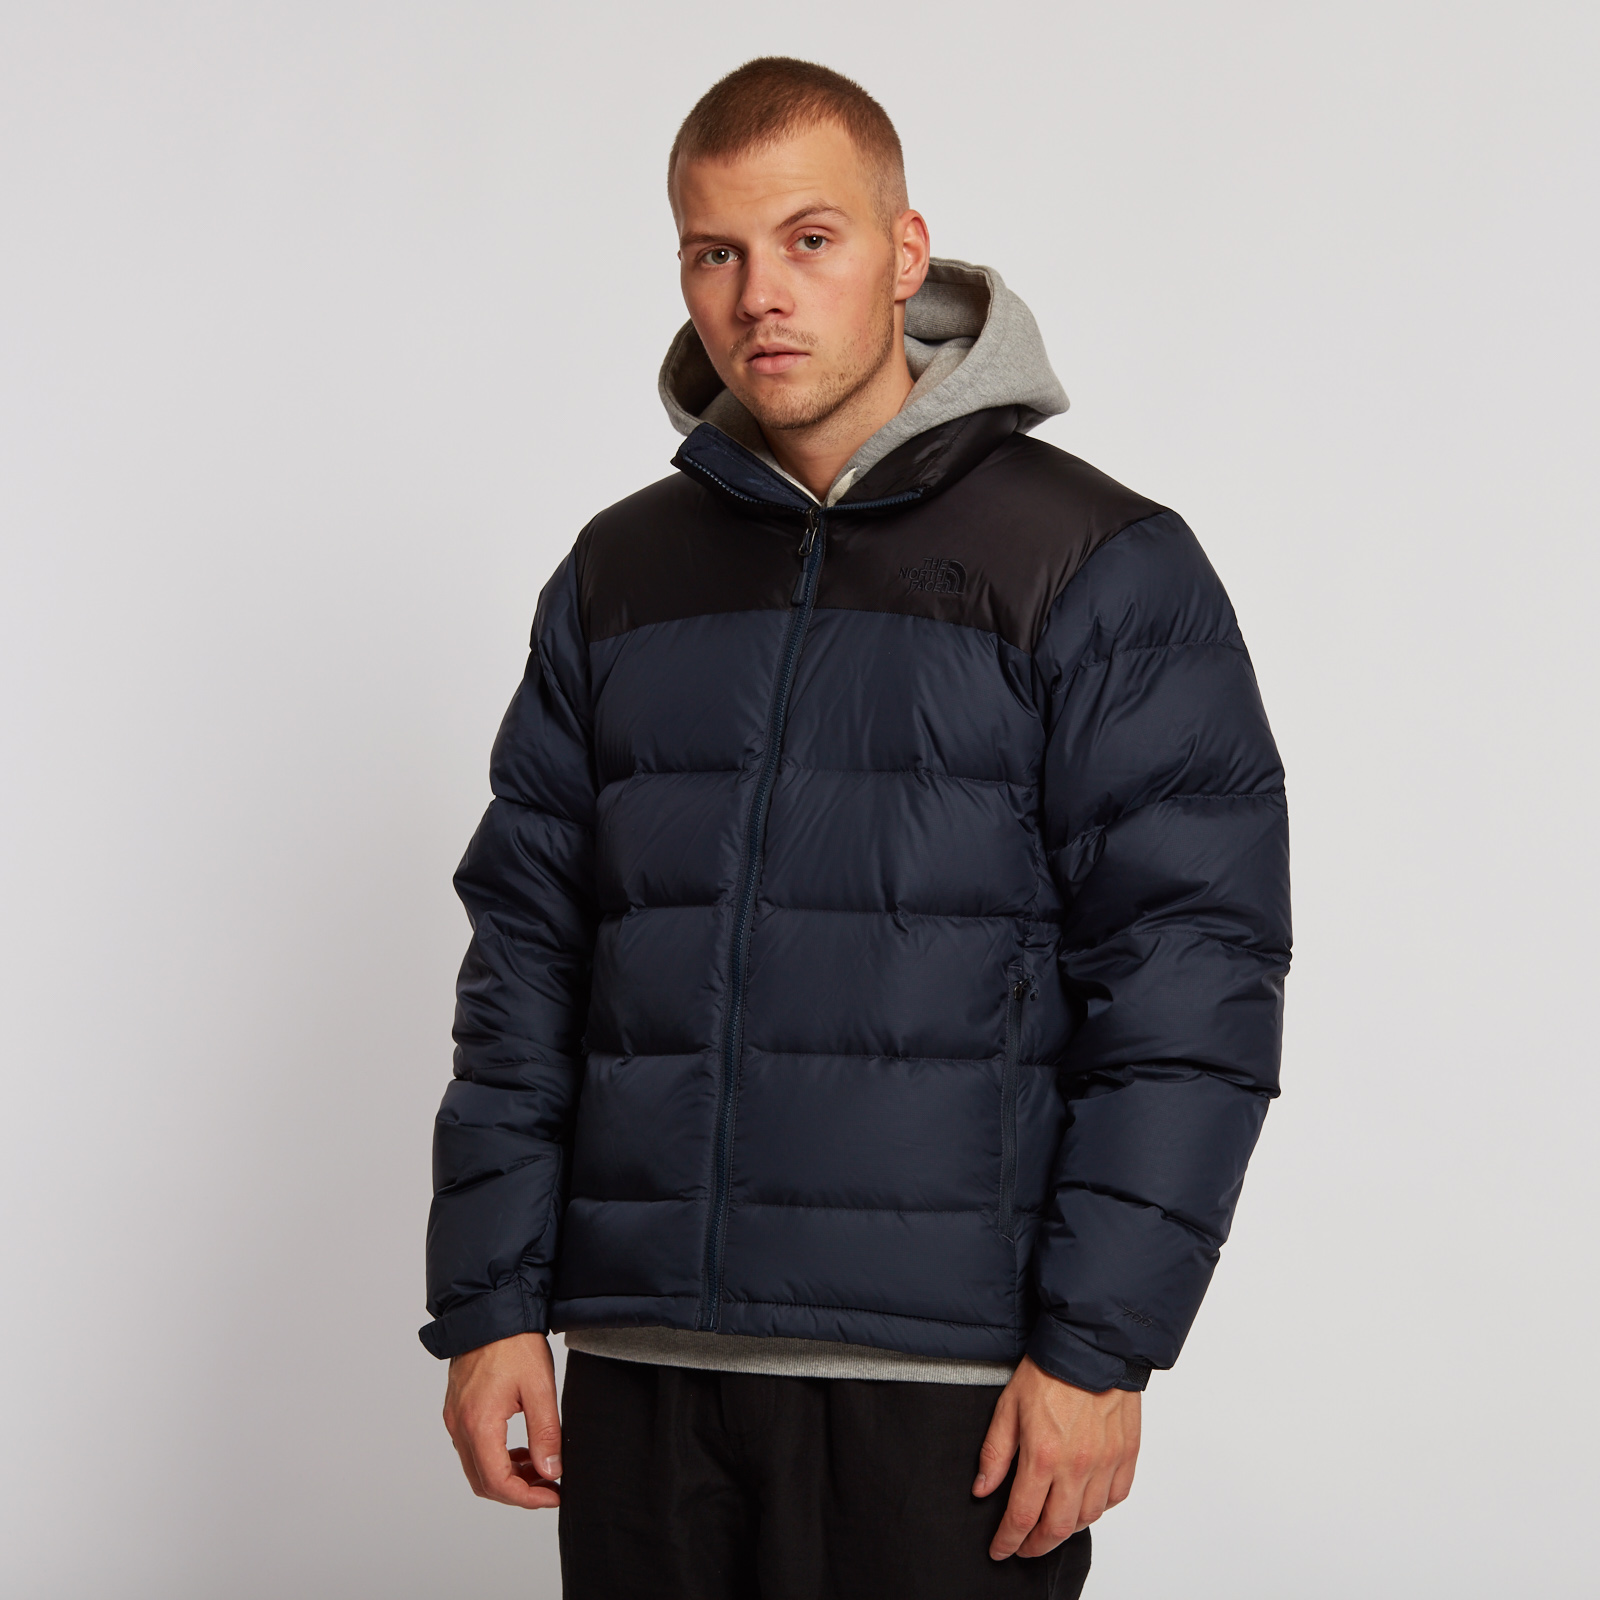 d0d7b7331 The North Face Nuptse 2 Jacket - T0aufdm8u - Sneakersnstuff ...